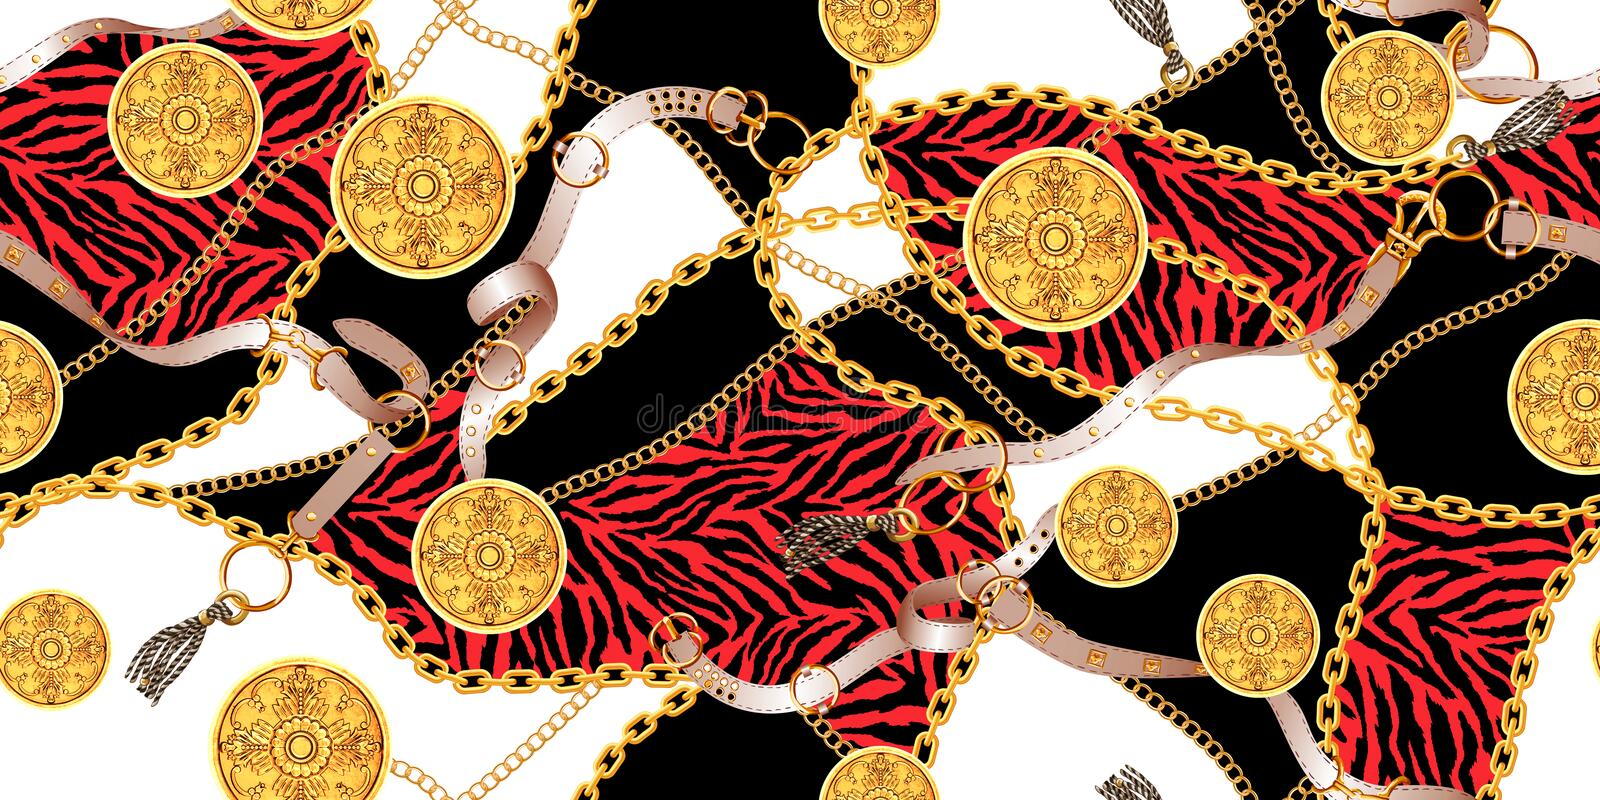 Seamless pattern with golden chains and belts, zebra skin vector illustration